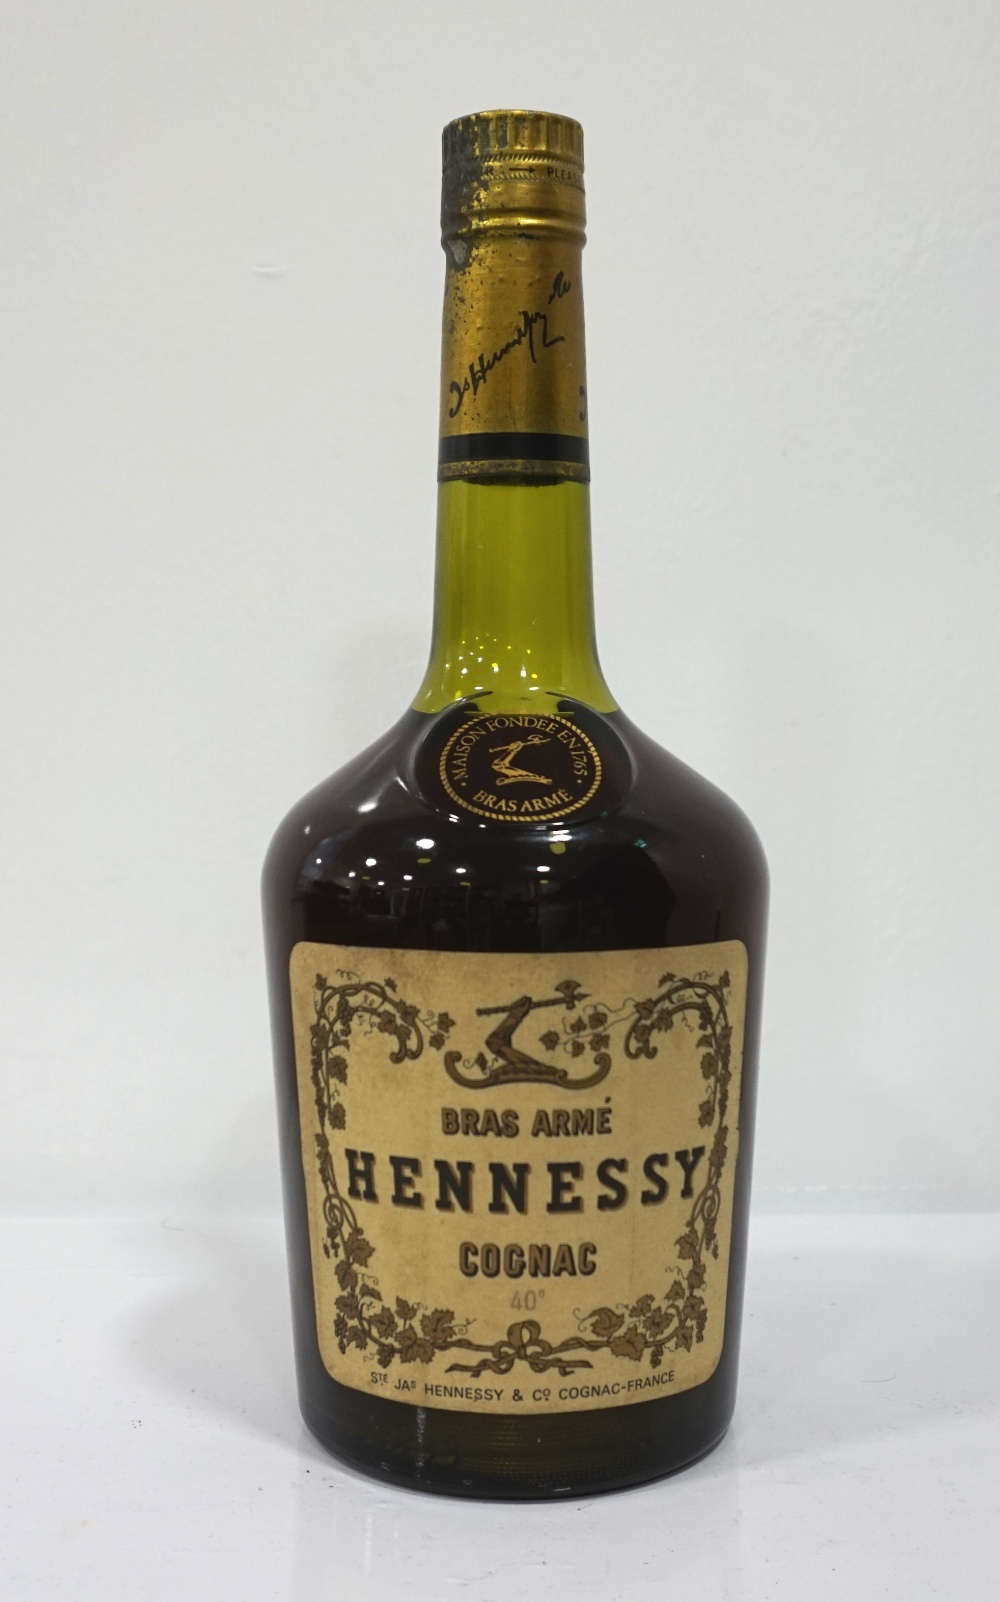 How to distinguish this Hennessy from forgery